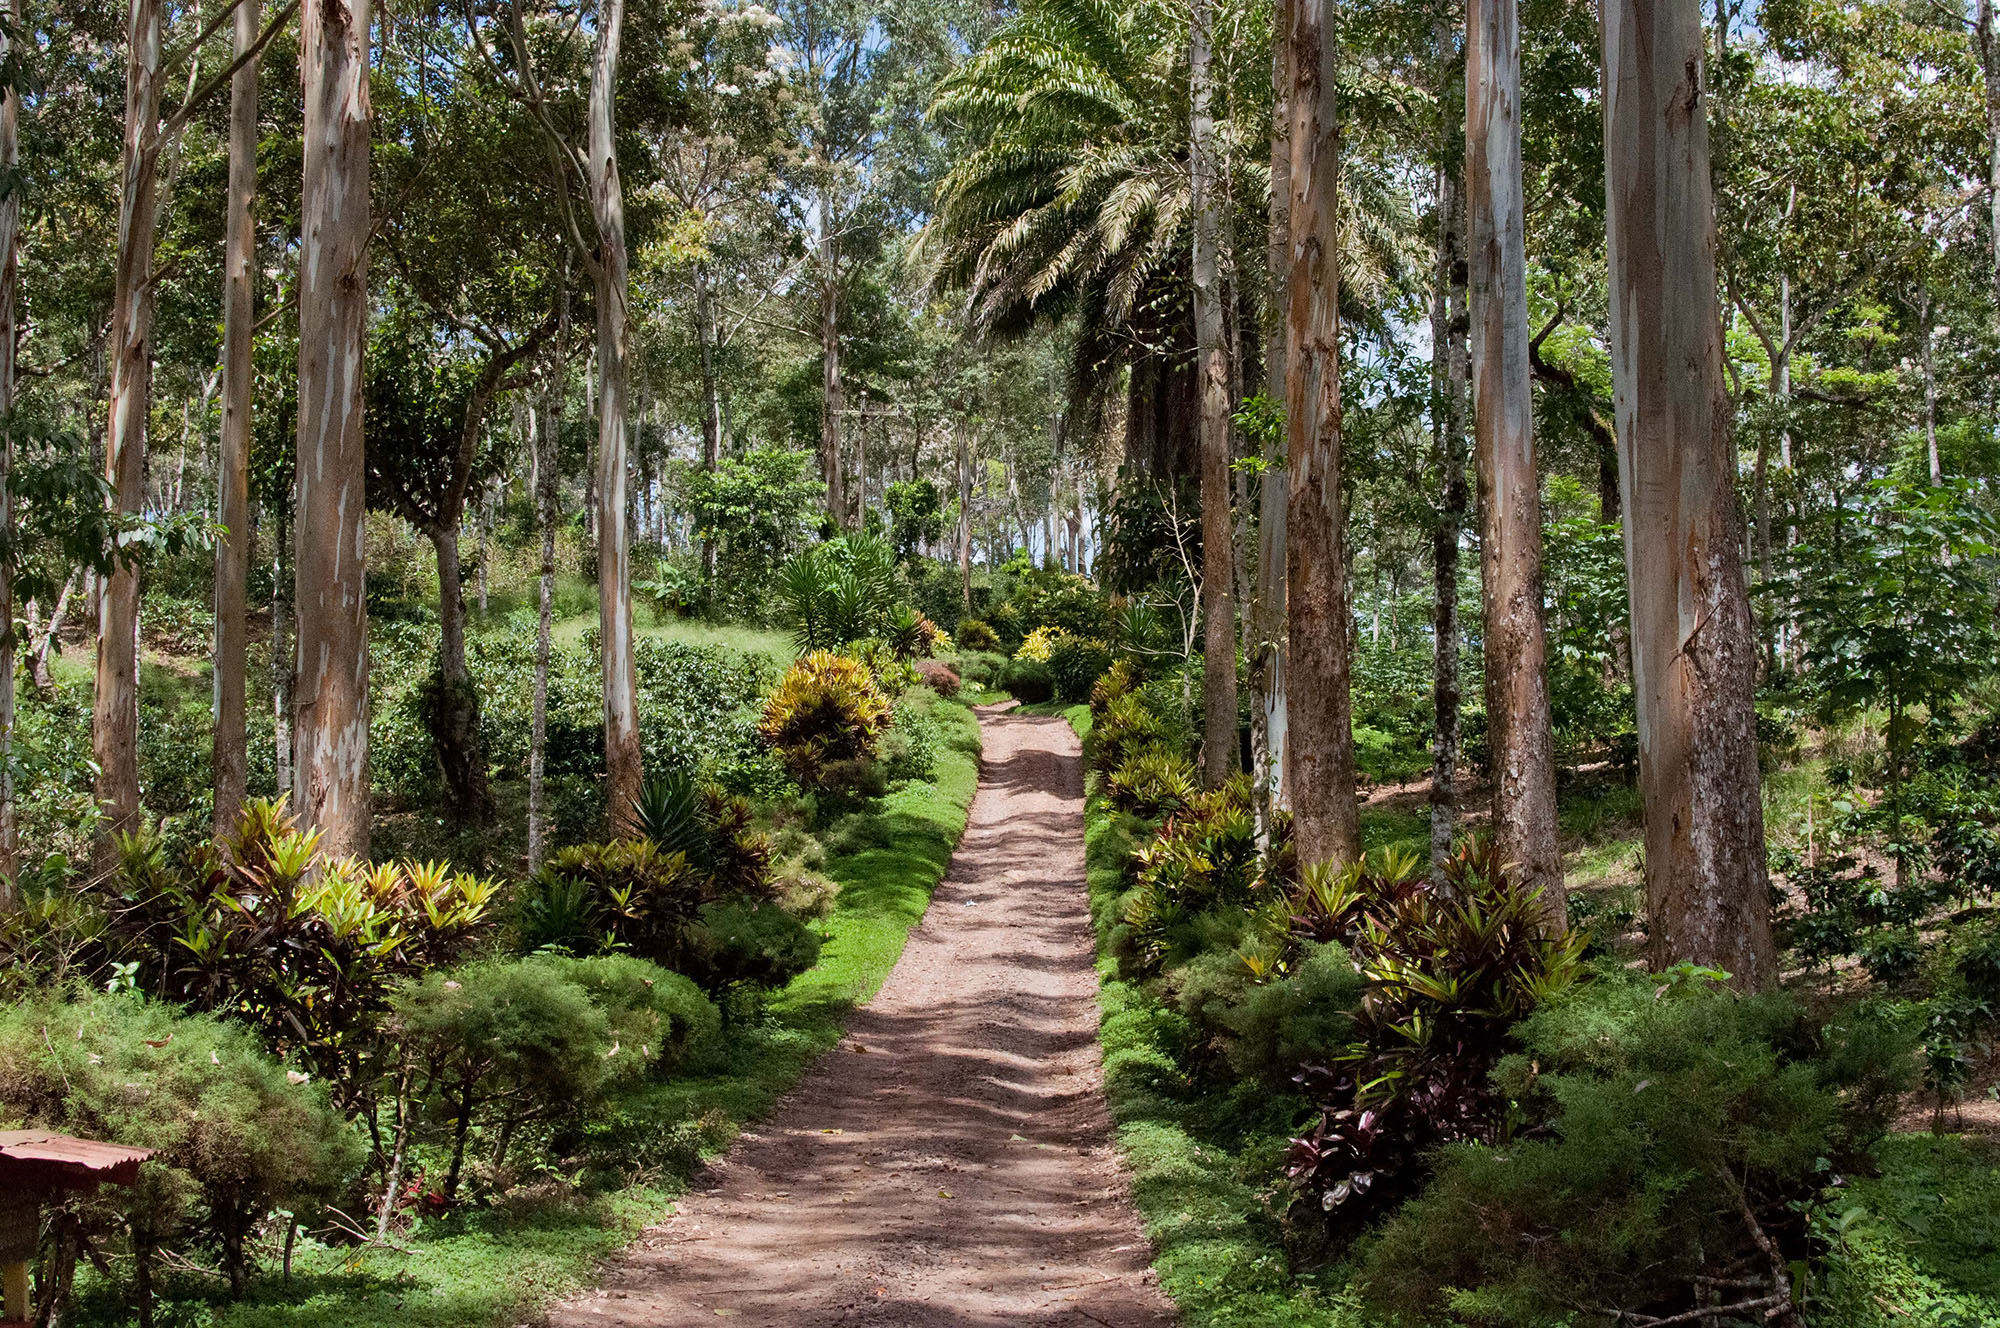 A lane surrounded by palm trees at Fincas Mierisch